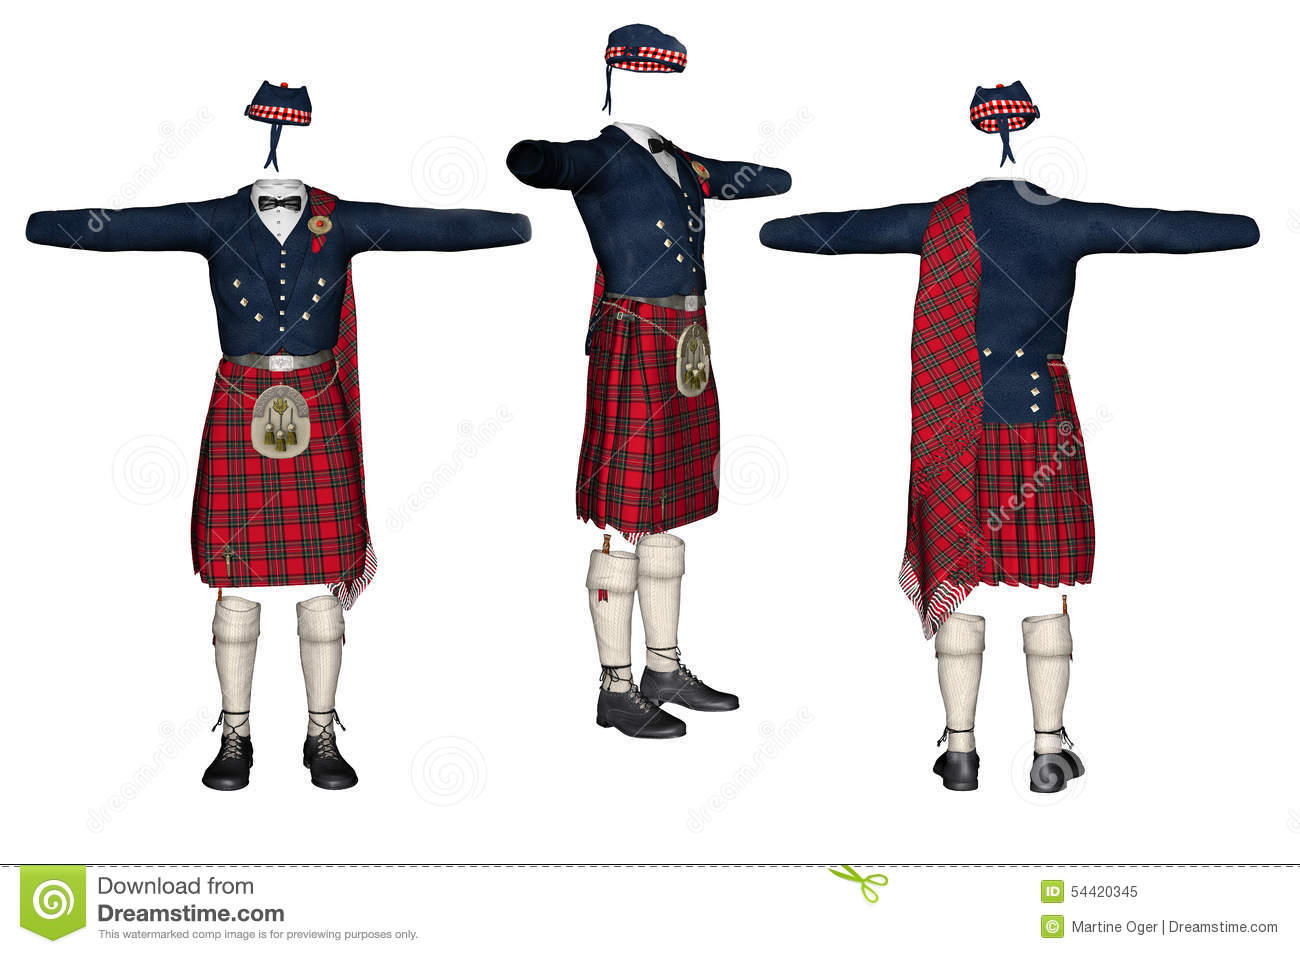 Scottish kilt.